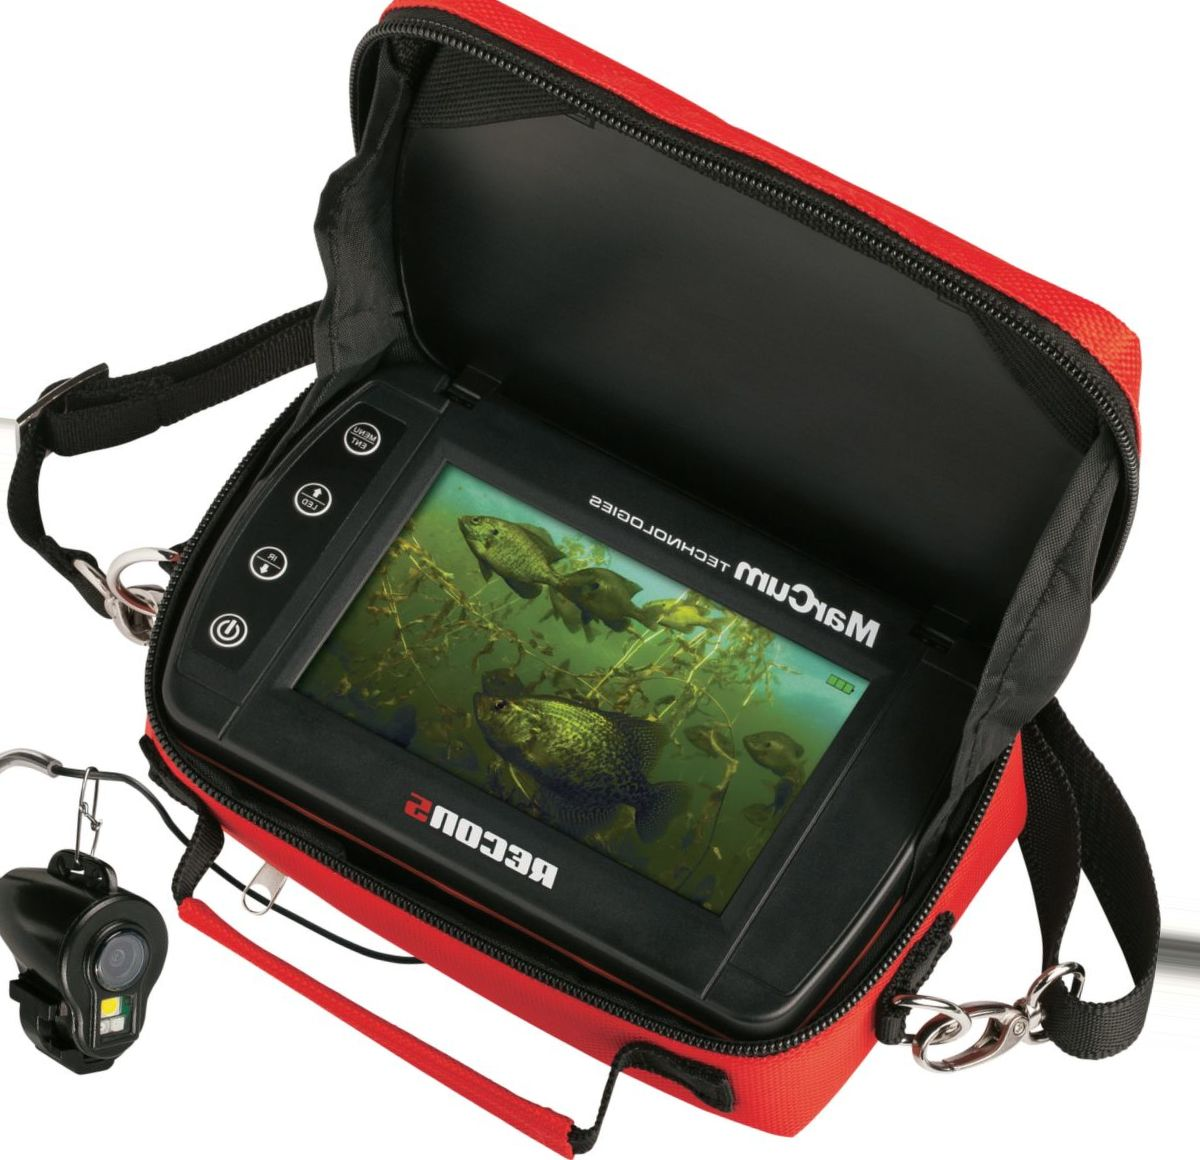 MarCum Recon 5 Underwater Camera